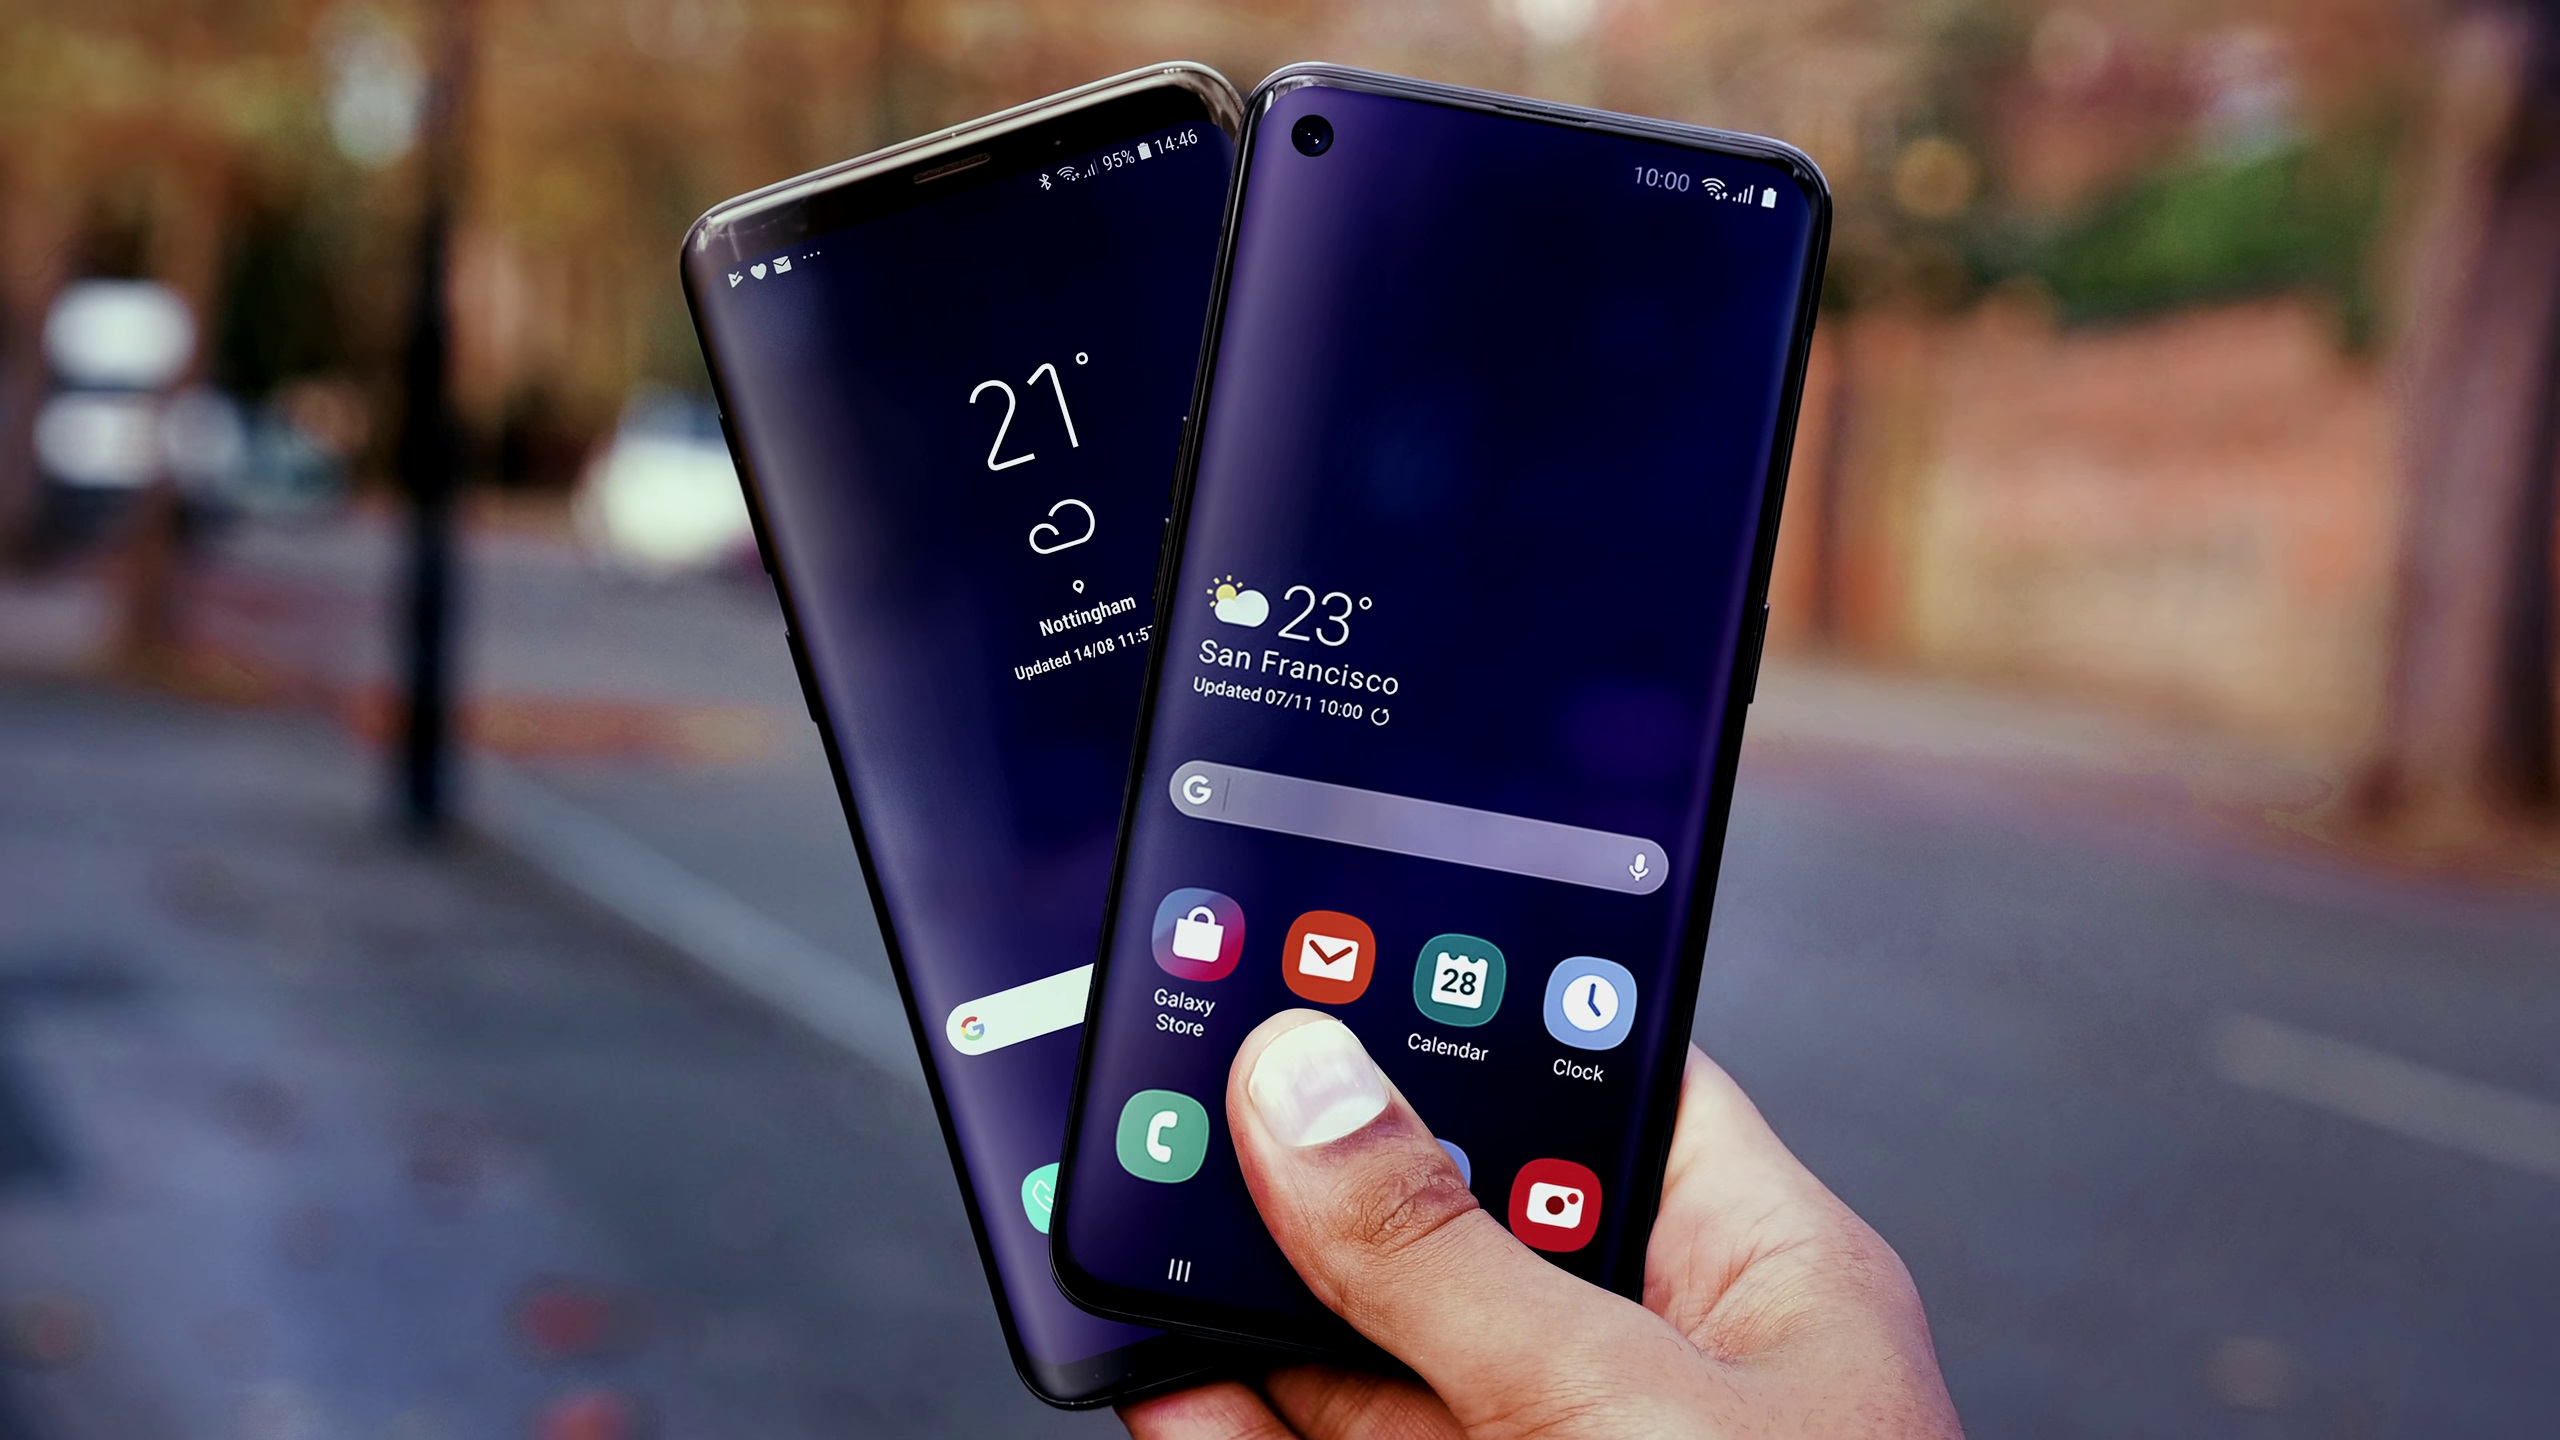 Samsung Galaxy Android 10 Update Supported Devices List